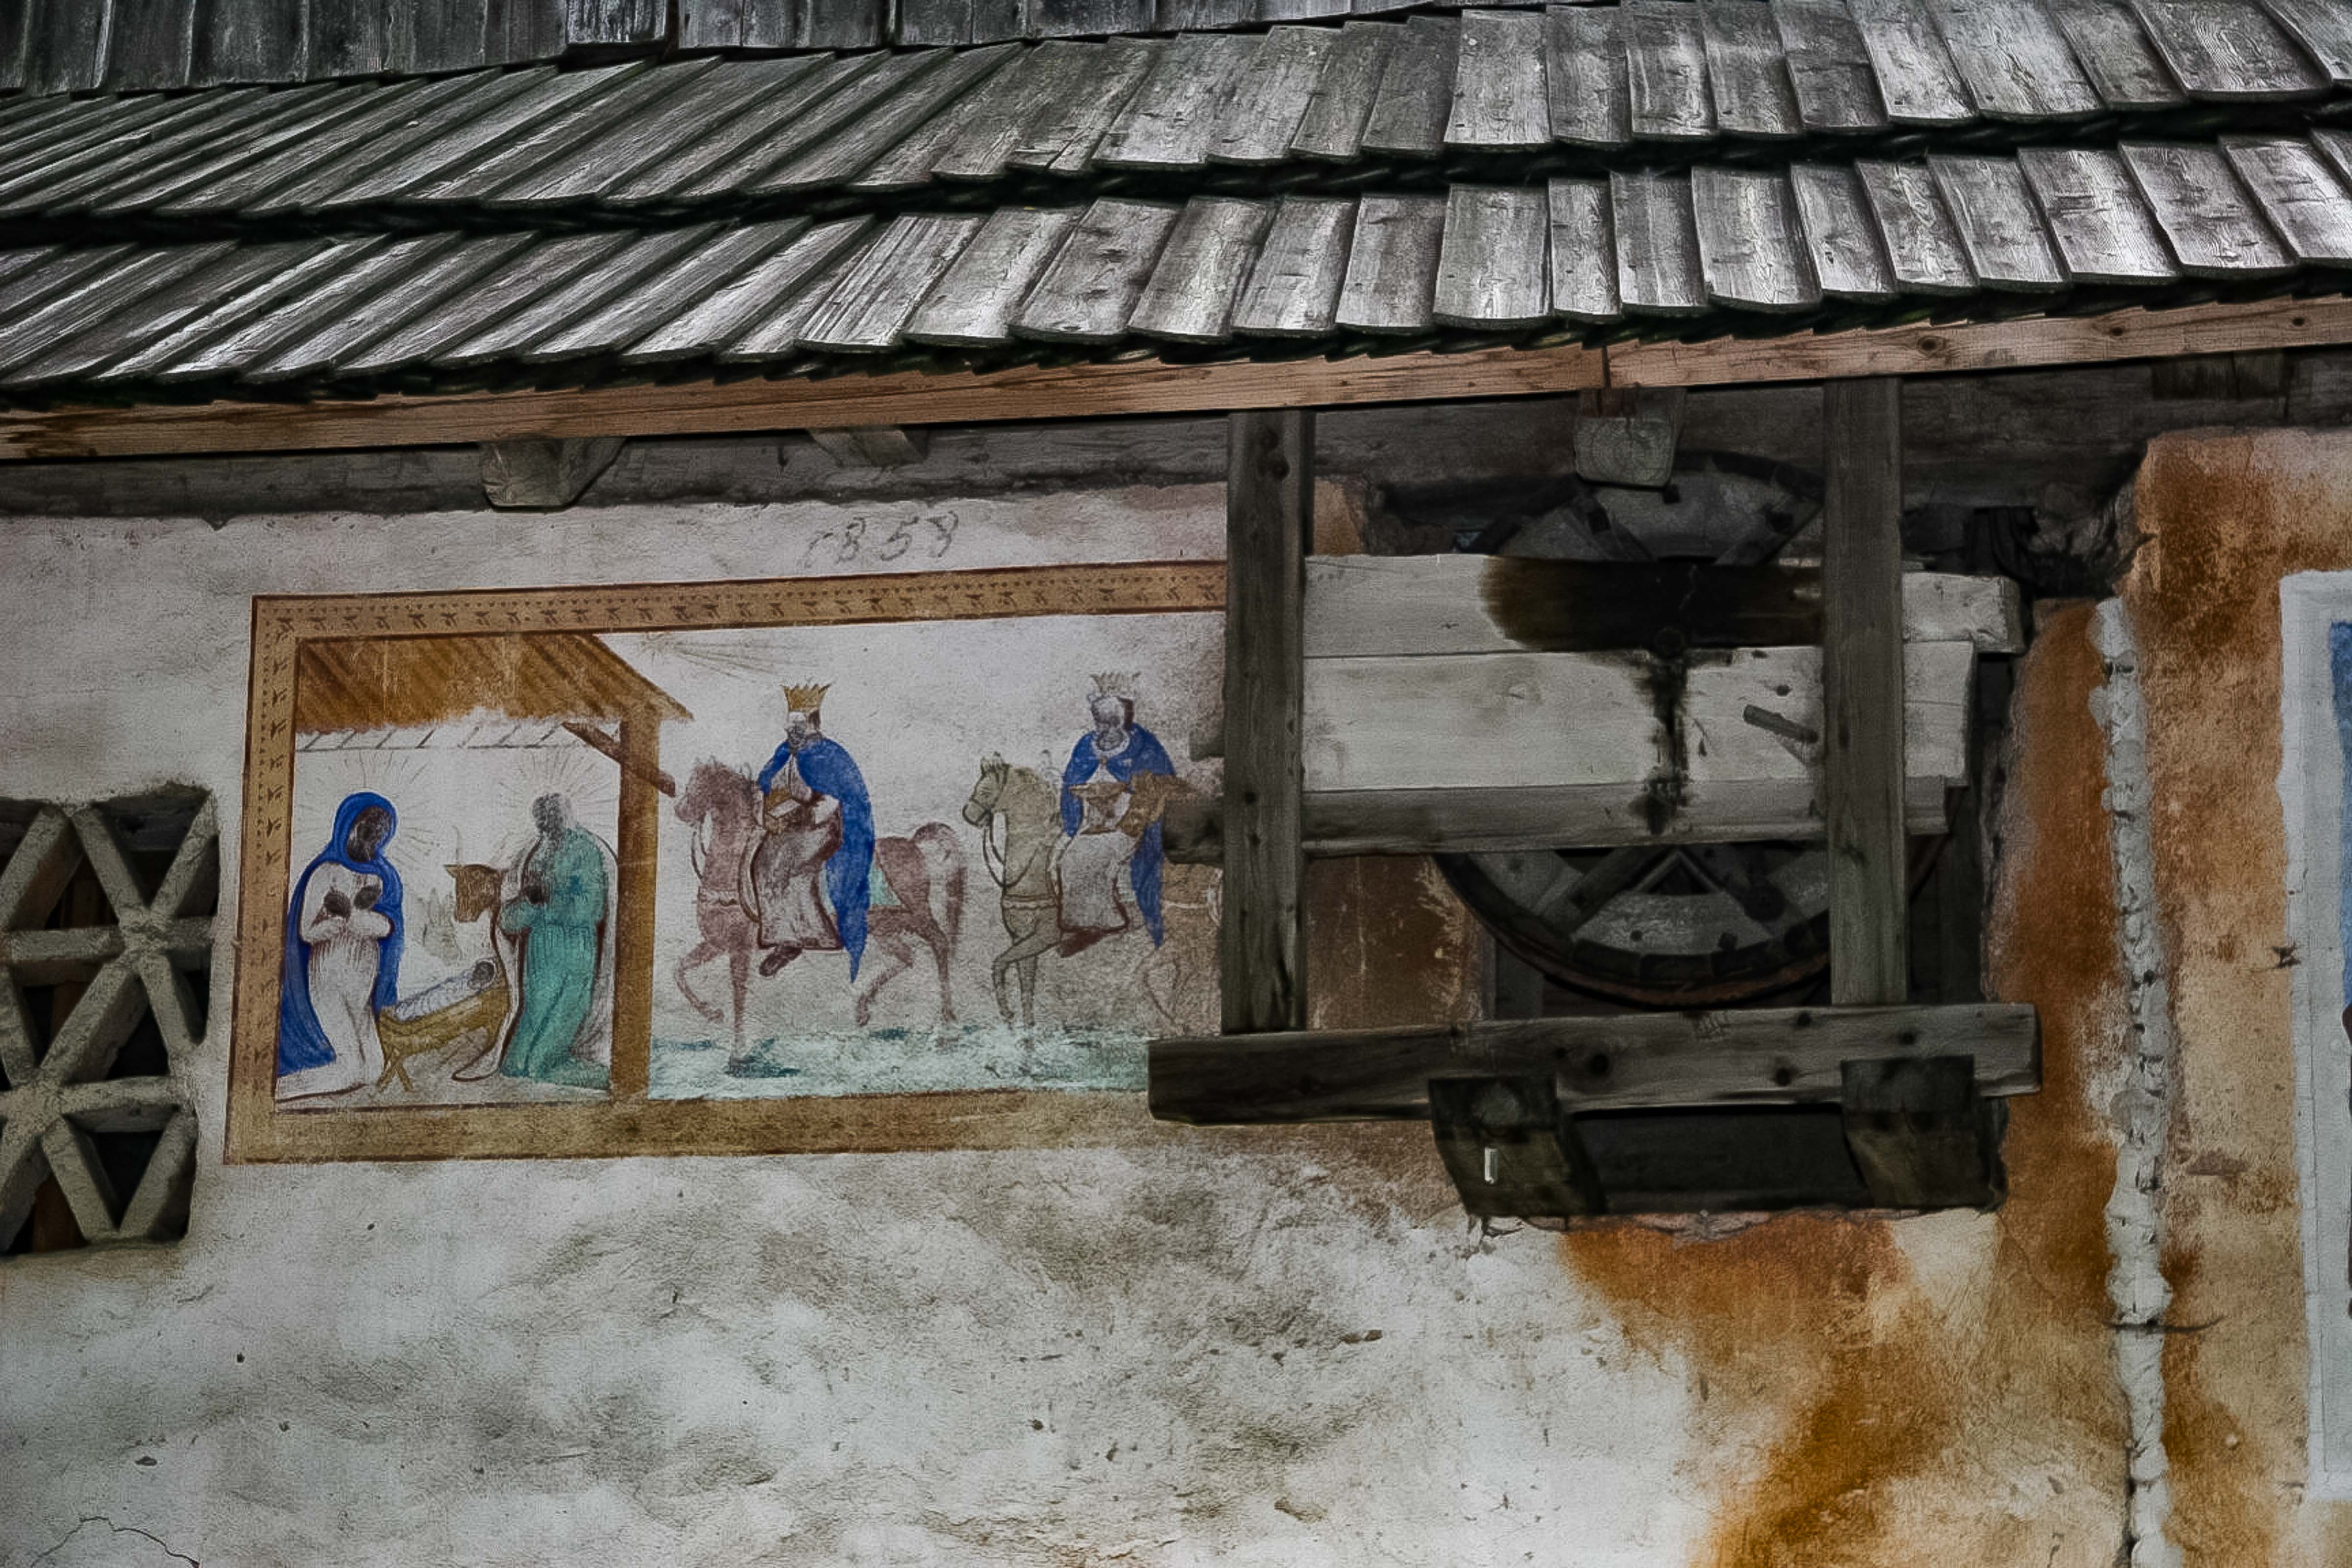 Slovenia, Solcava Prov, Painted Wall On House Built In 1858, 2006, IMG 8382